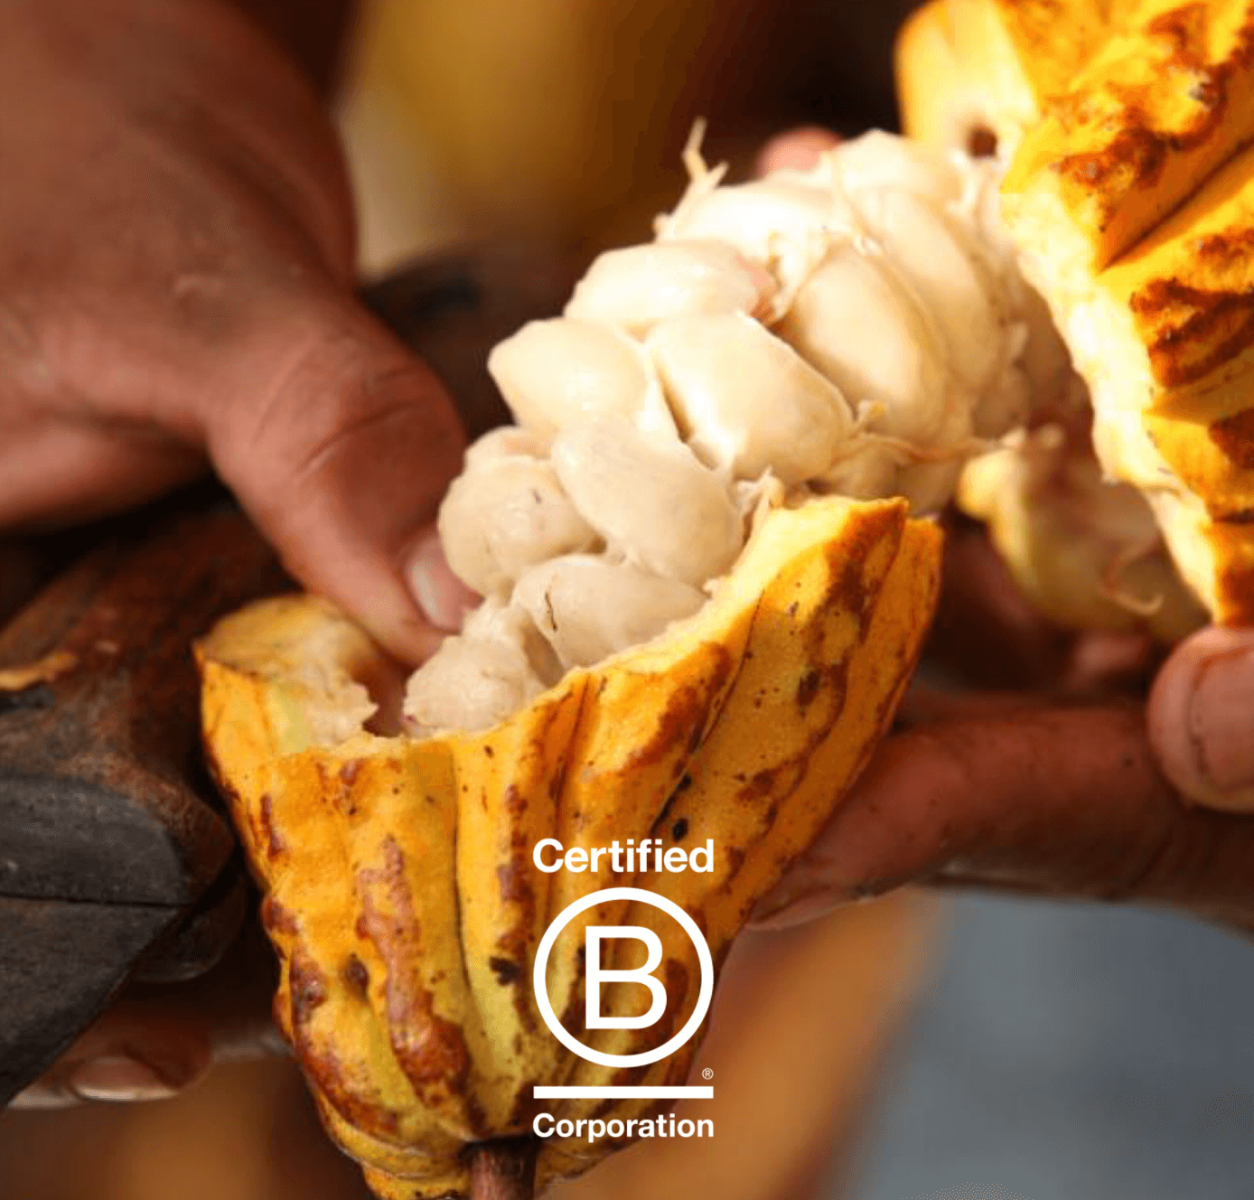 What makes Valrhona a B Corp